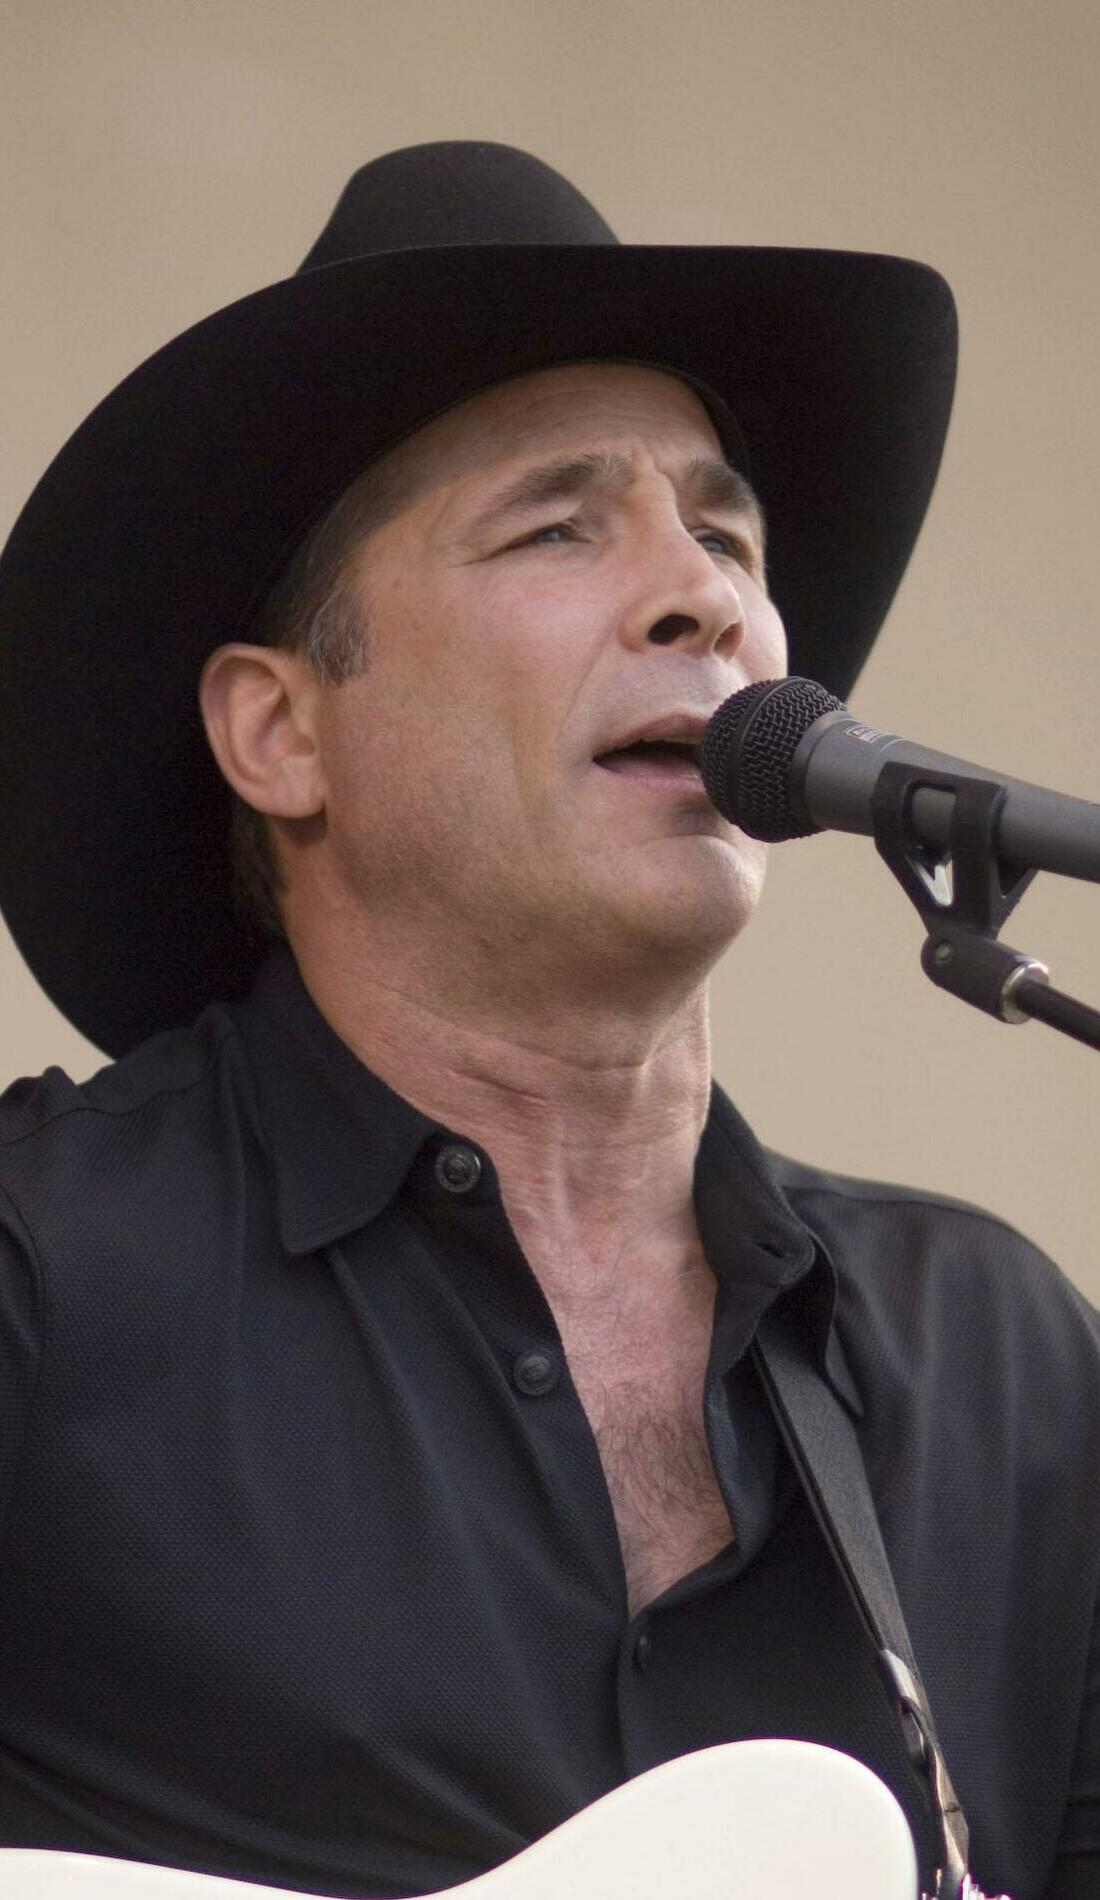 A Clint Black live event